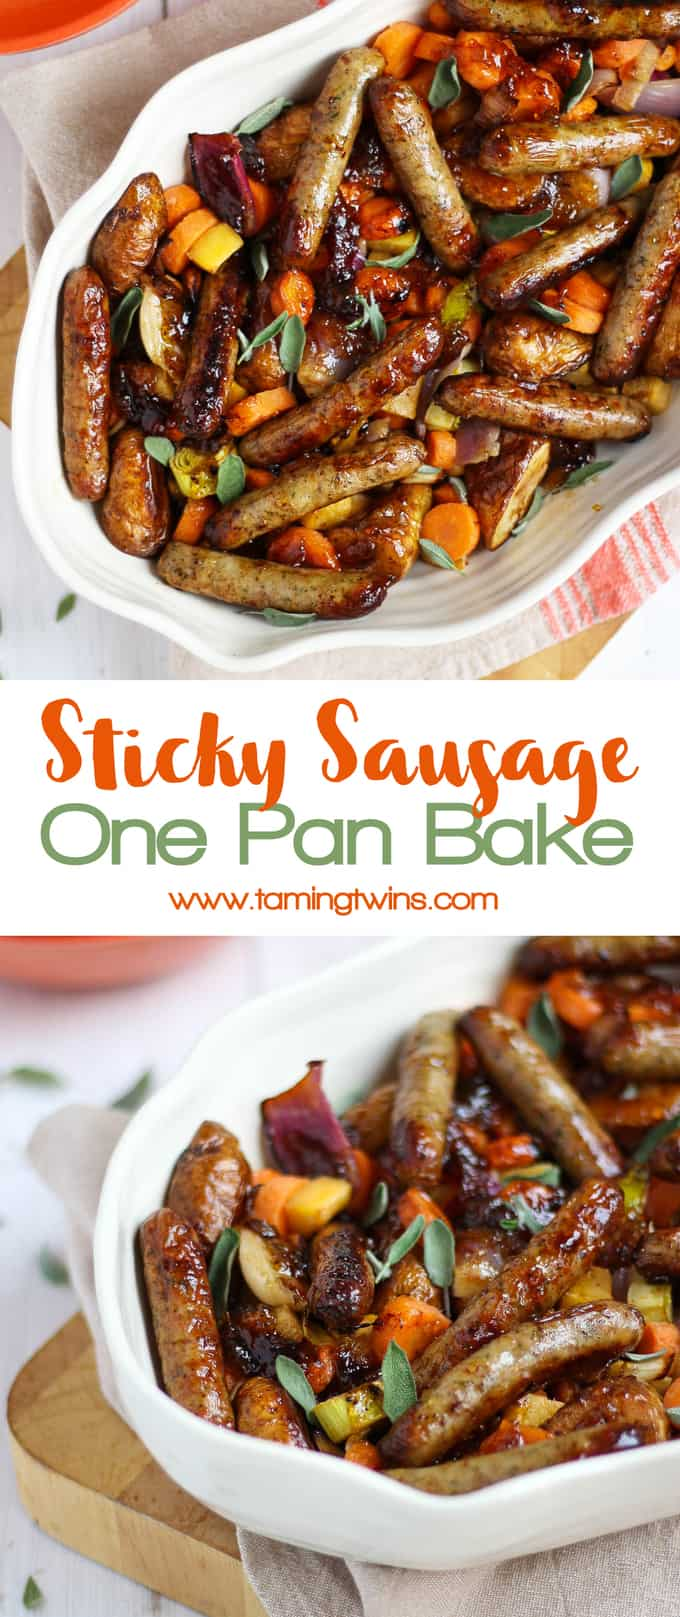 A quick and easy family dinner, this Sticky Sausage One Pan Traybake is simple and tasty. Using marmalade to add sweetness, the kids will love it! Also gluten free, dairy free and wheat free.